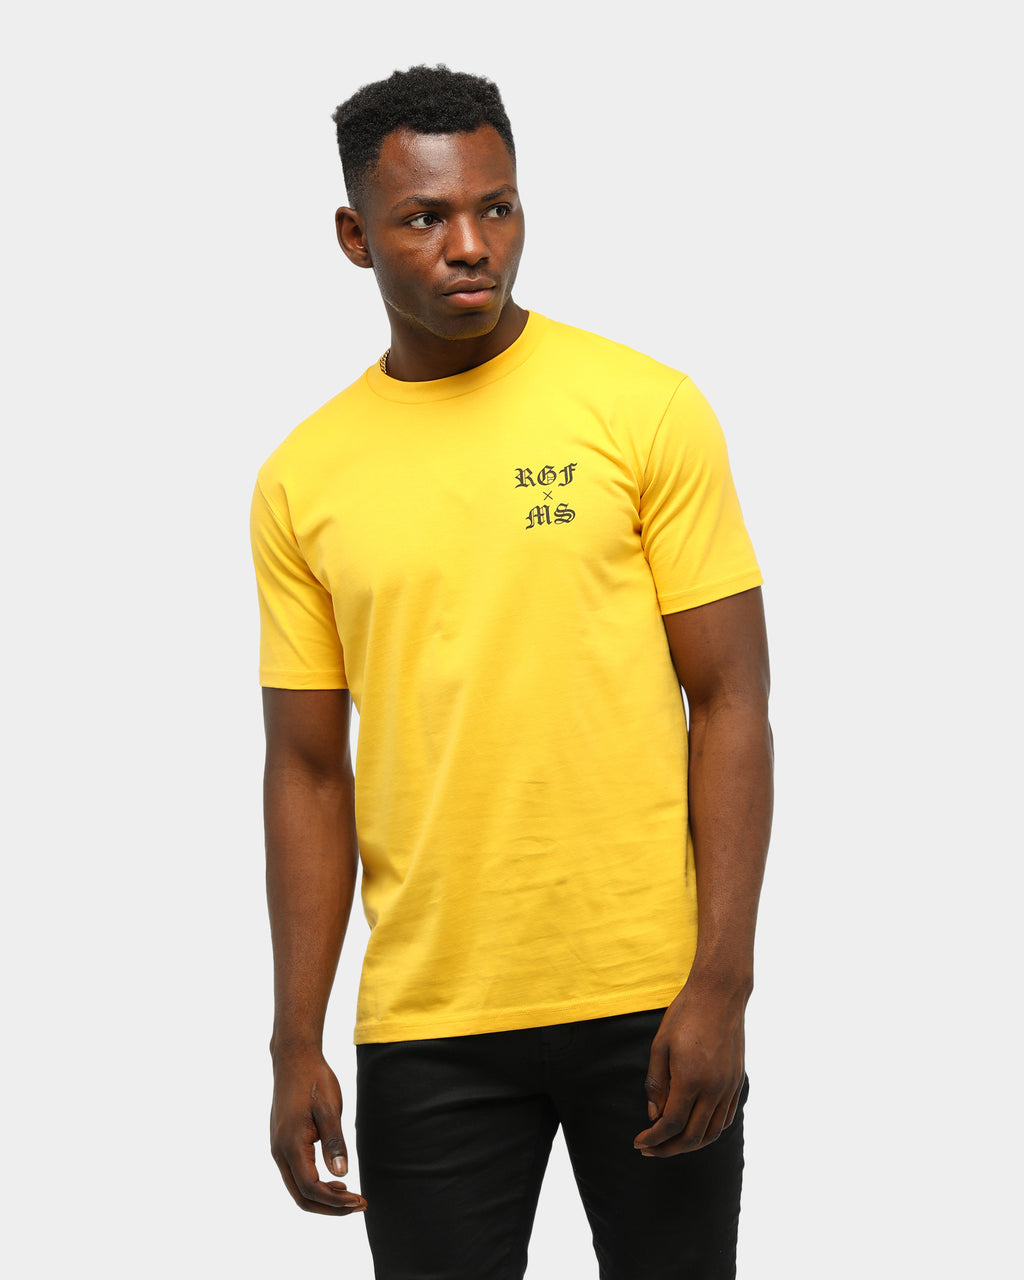 RGF X MS SUNDANCE TEE - Yellow